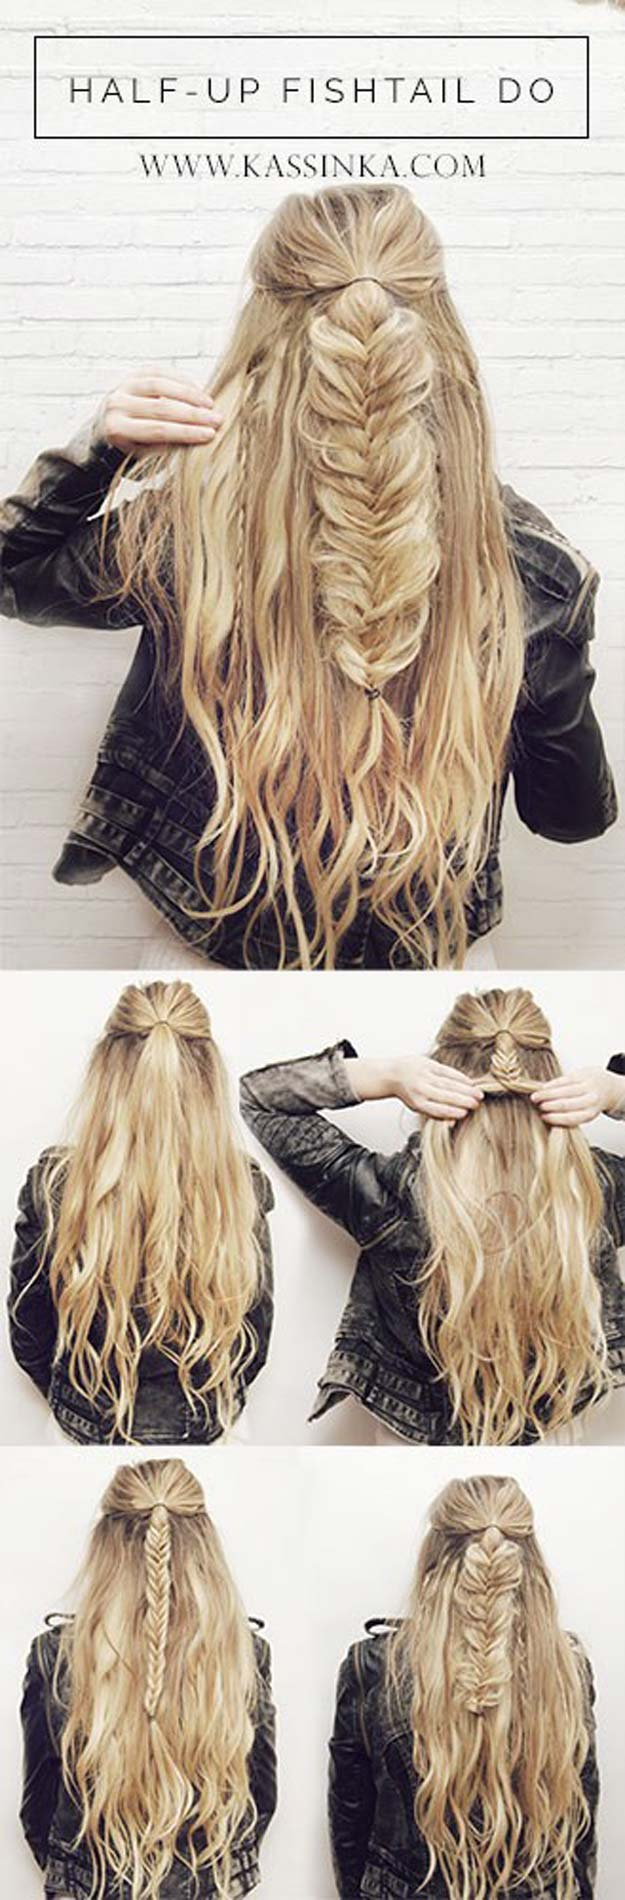 Best Hair Braiding Tutorials - Half-Up Fishtail Tutorial - Easy Step by Step Tutorials for Braids - How To Braid Fishtail, French Braids, Flower Crown, Side Braids, Cornrows, Updos - Cool Braided Hairstyles for Girls, Teens and Women - School, Day and Evening, Boho, Casual and Formal Looks #hairstyles #braiding #braidingtutorials #diyhair